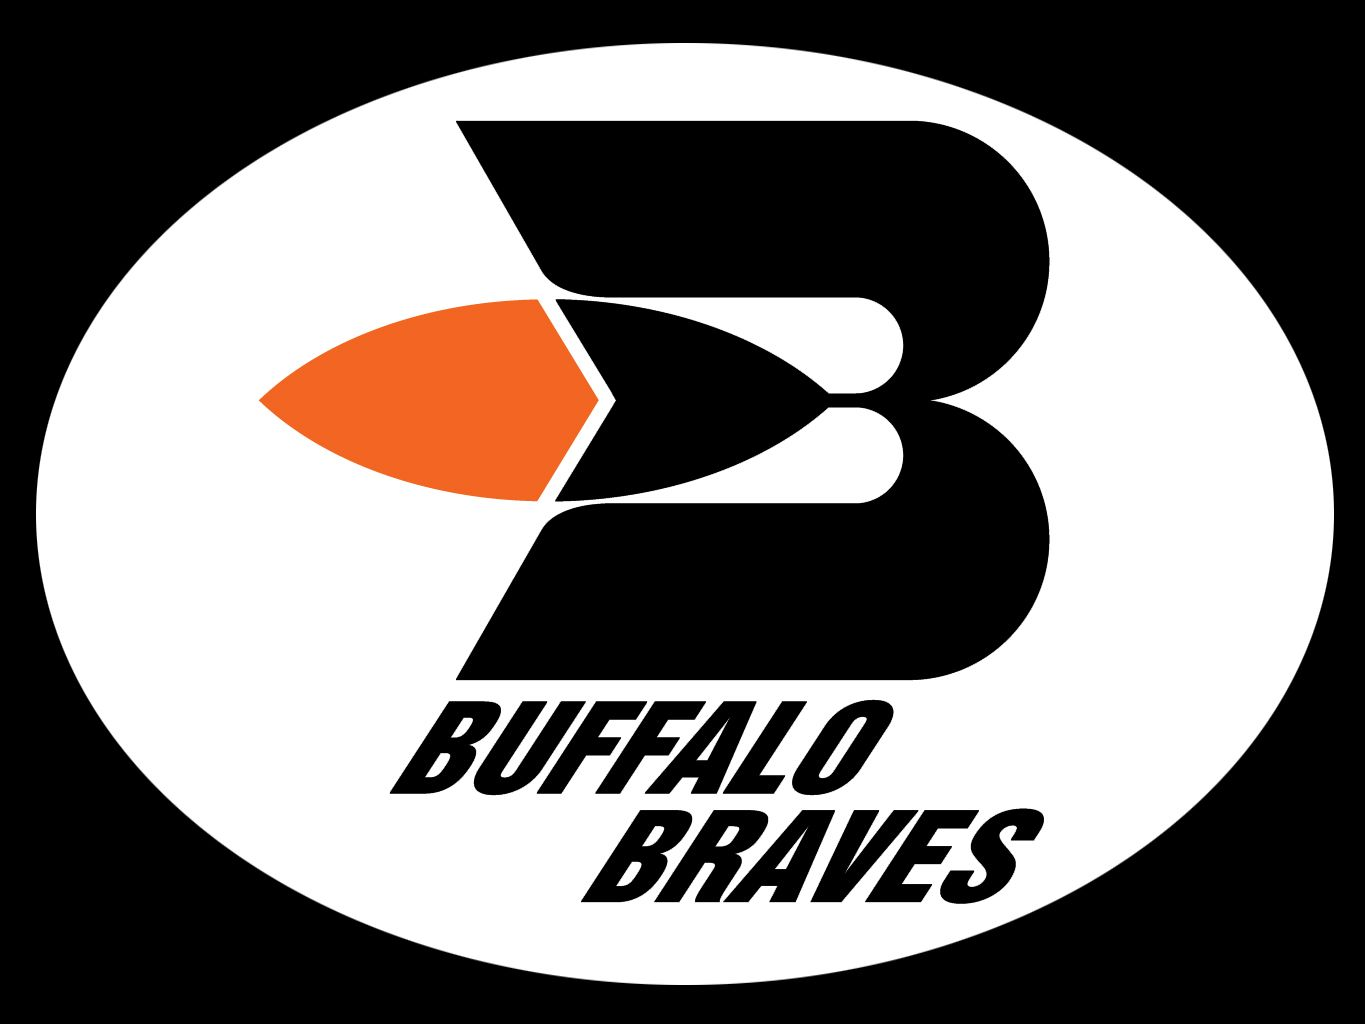 Buffalo Braves Logo Basketball Braves Buffalo New York